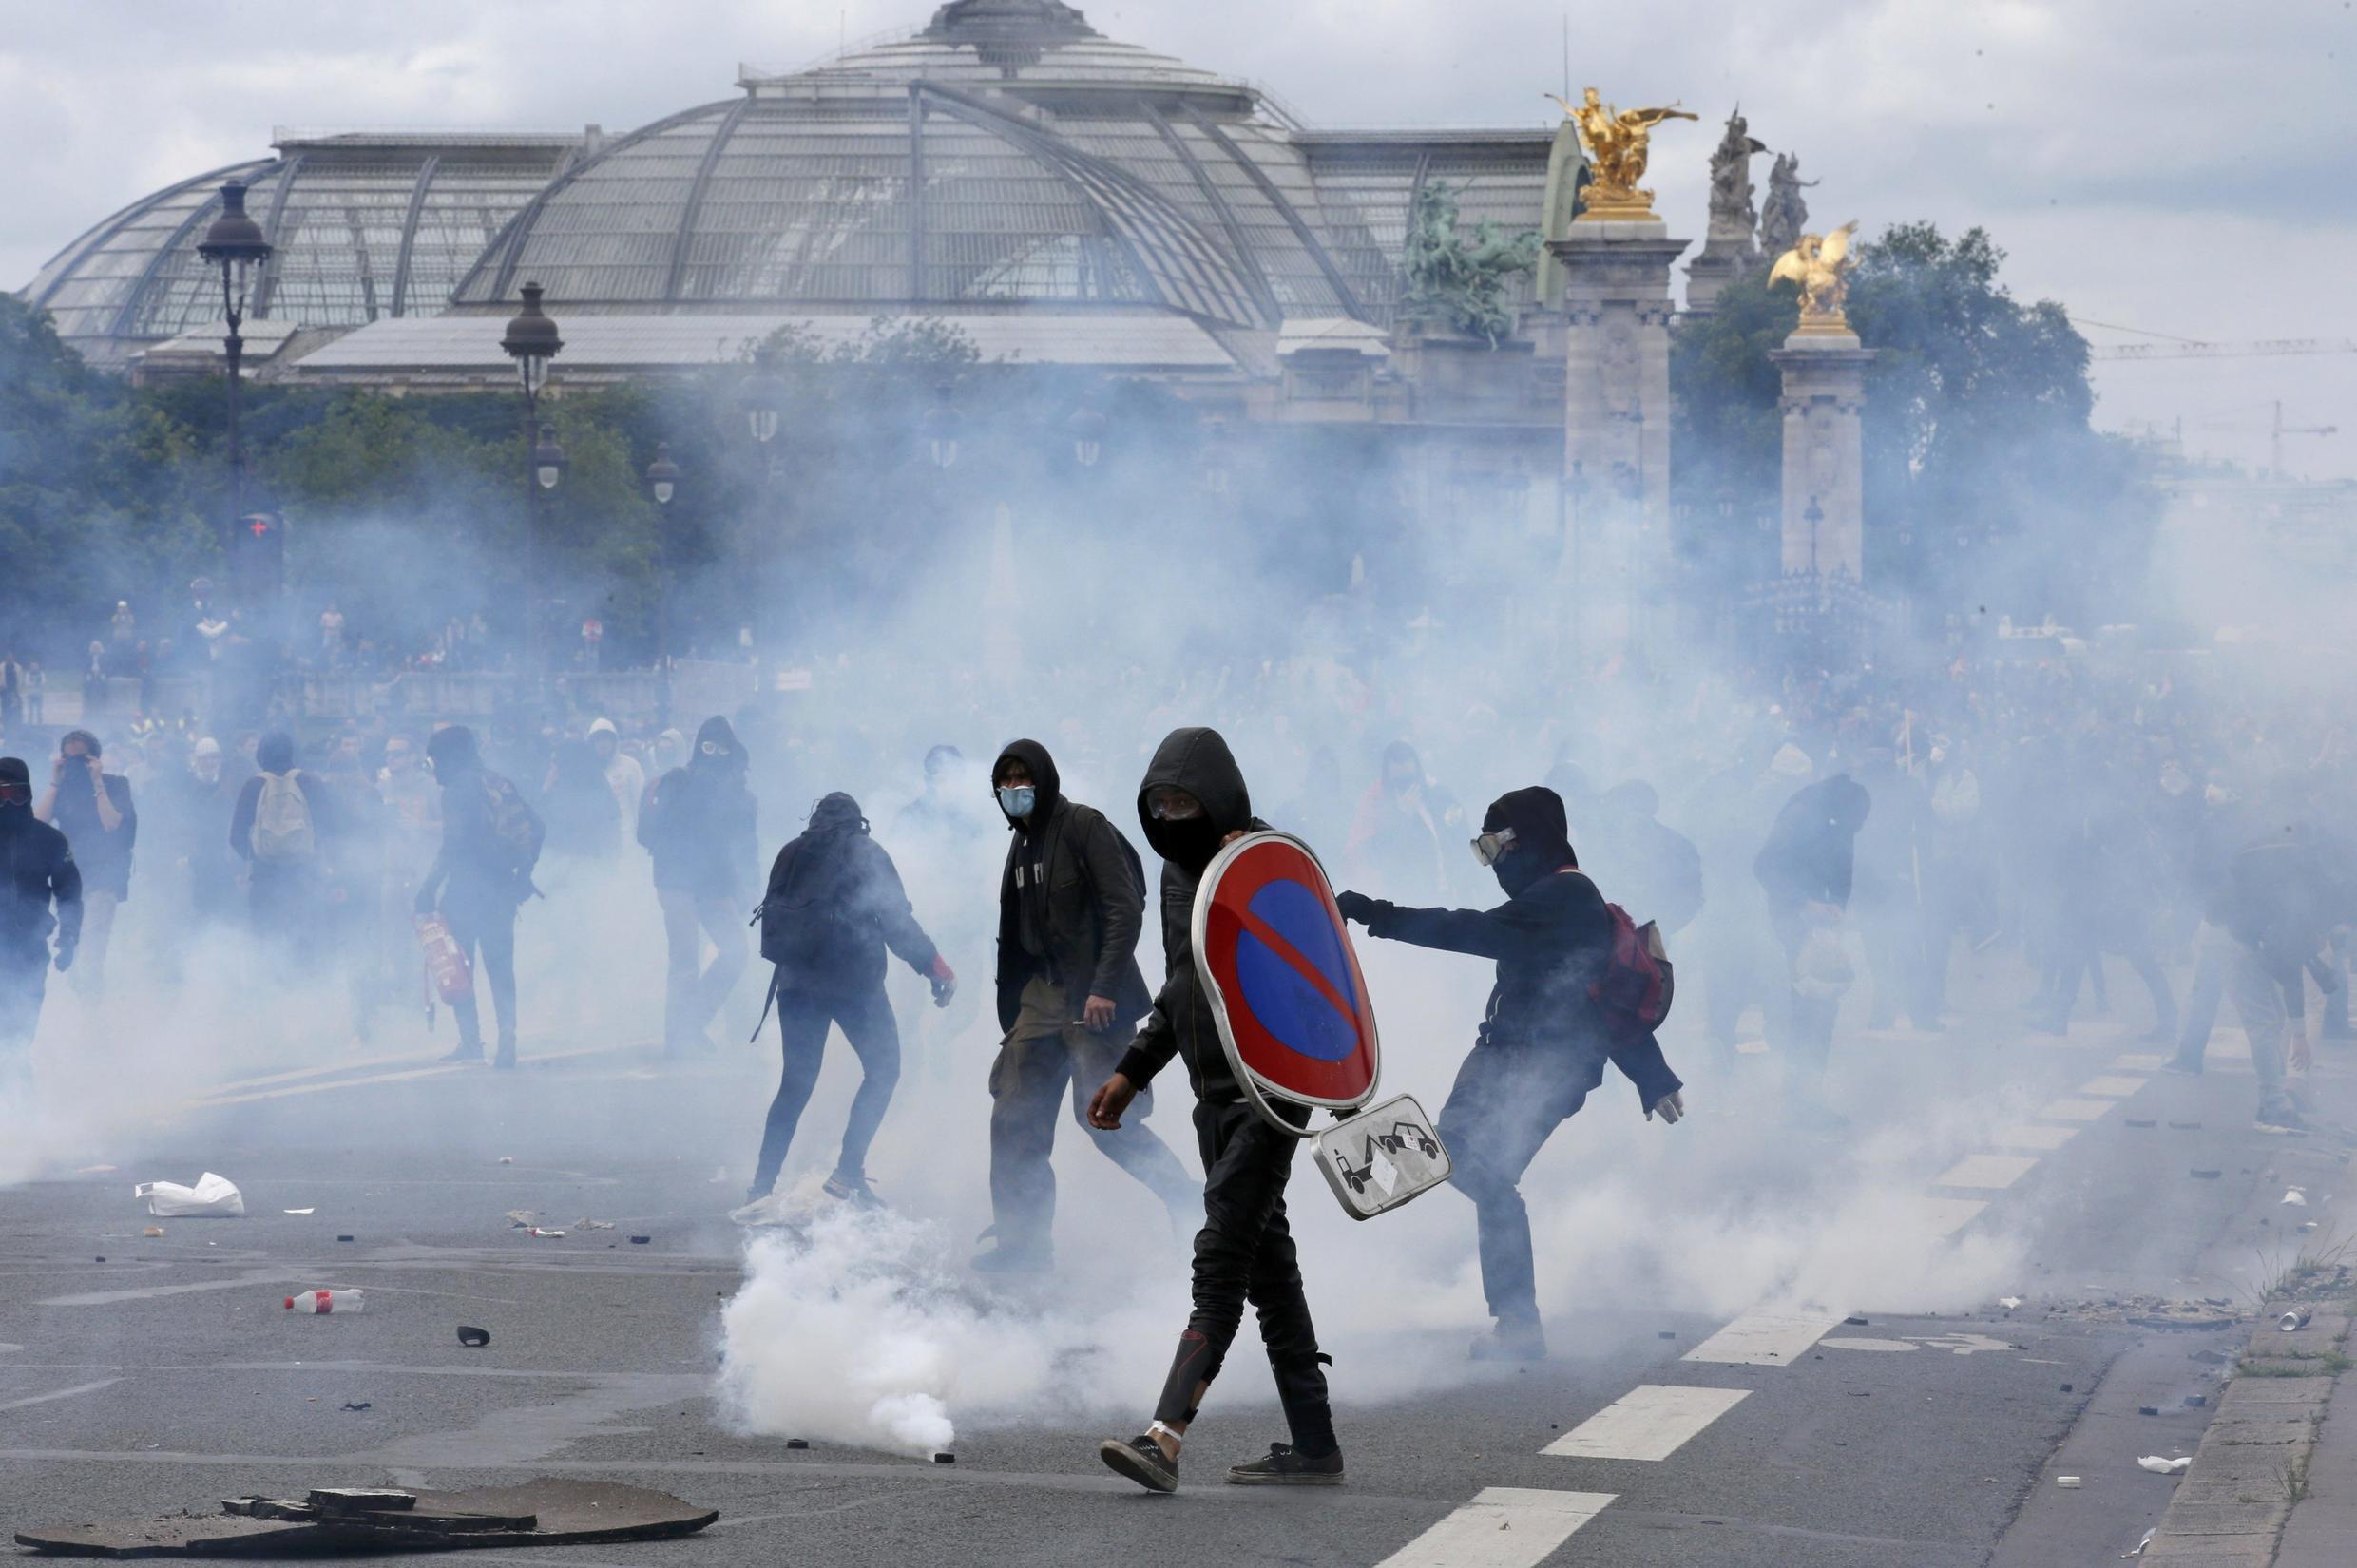 Masked youths face French police on 14 June demonstration against the labour reform